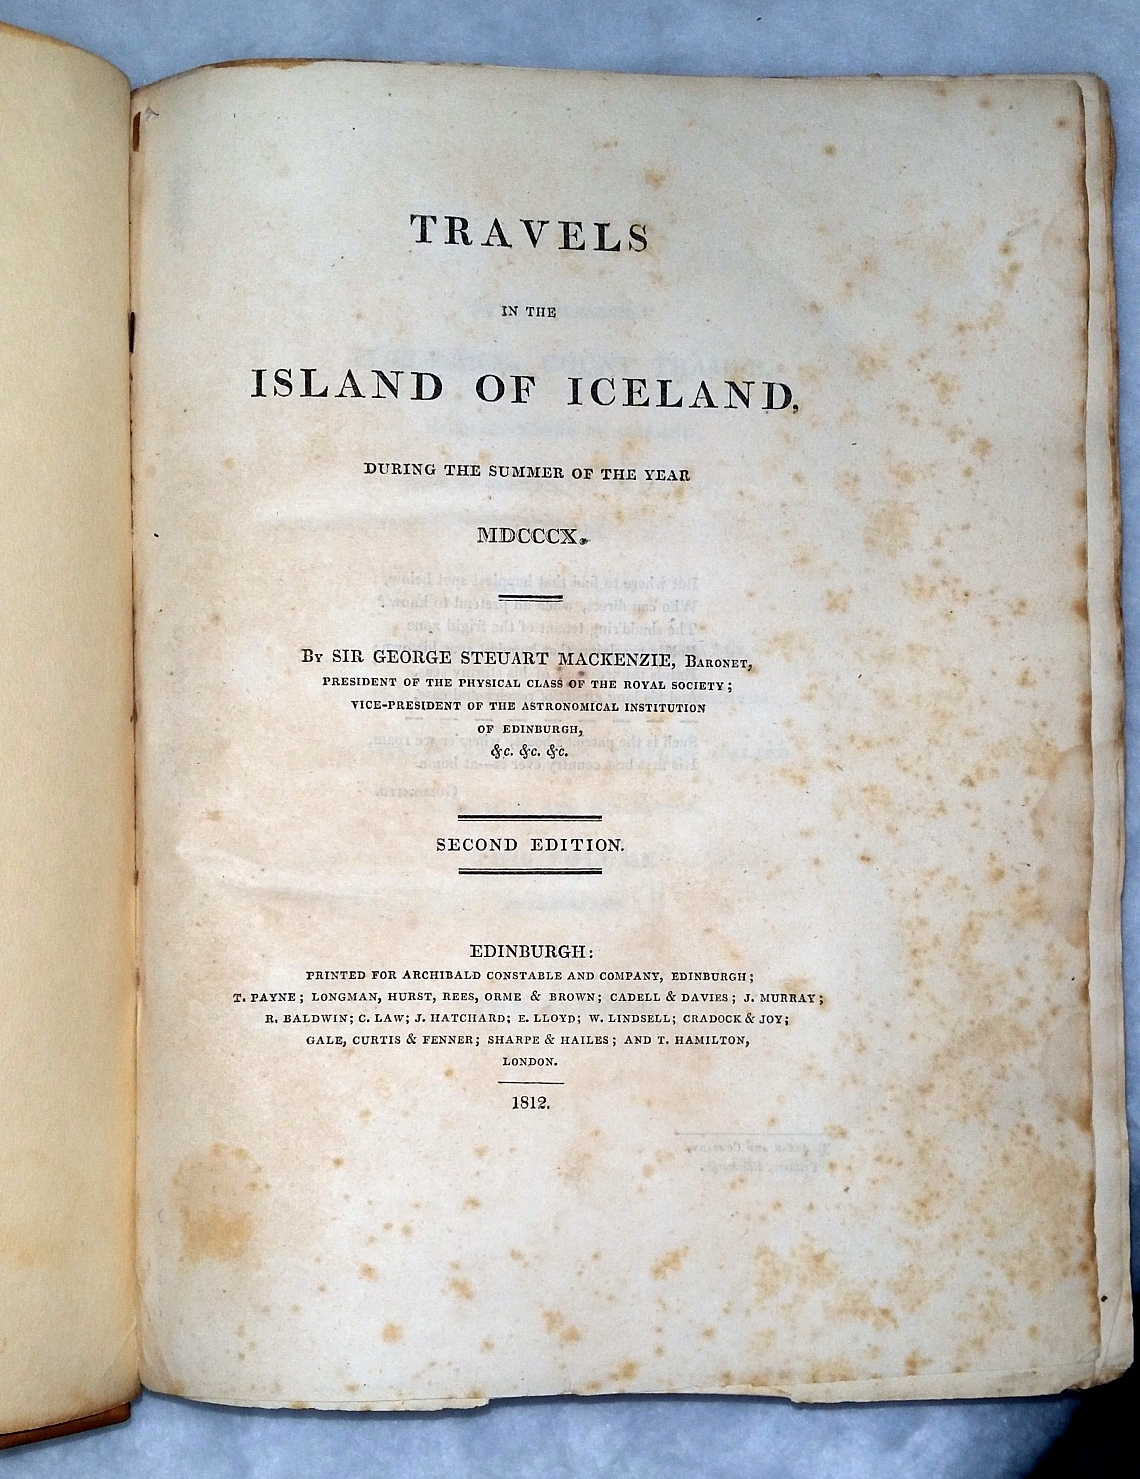 Image for Travels in The Island of Iceland during the Summer of the Year MDCCCX